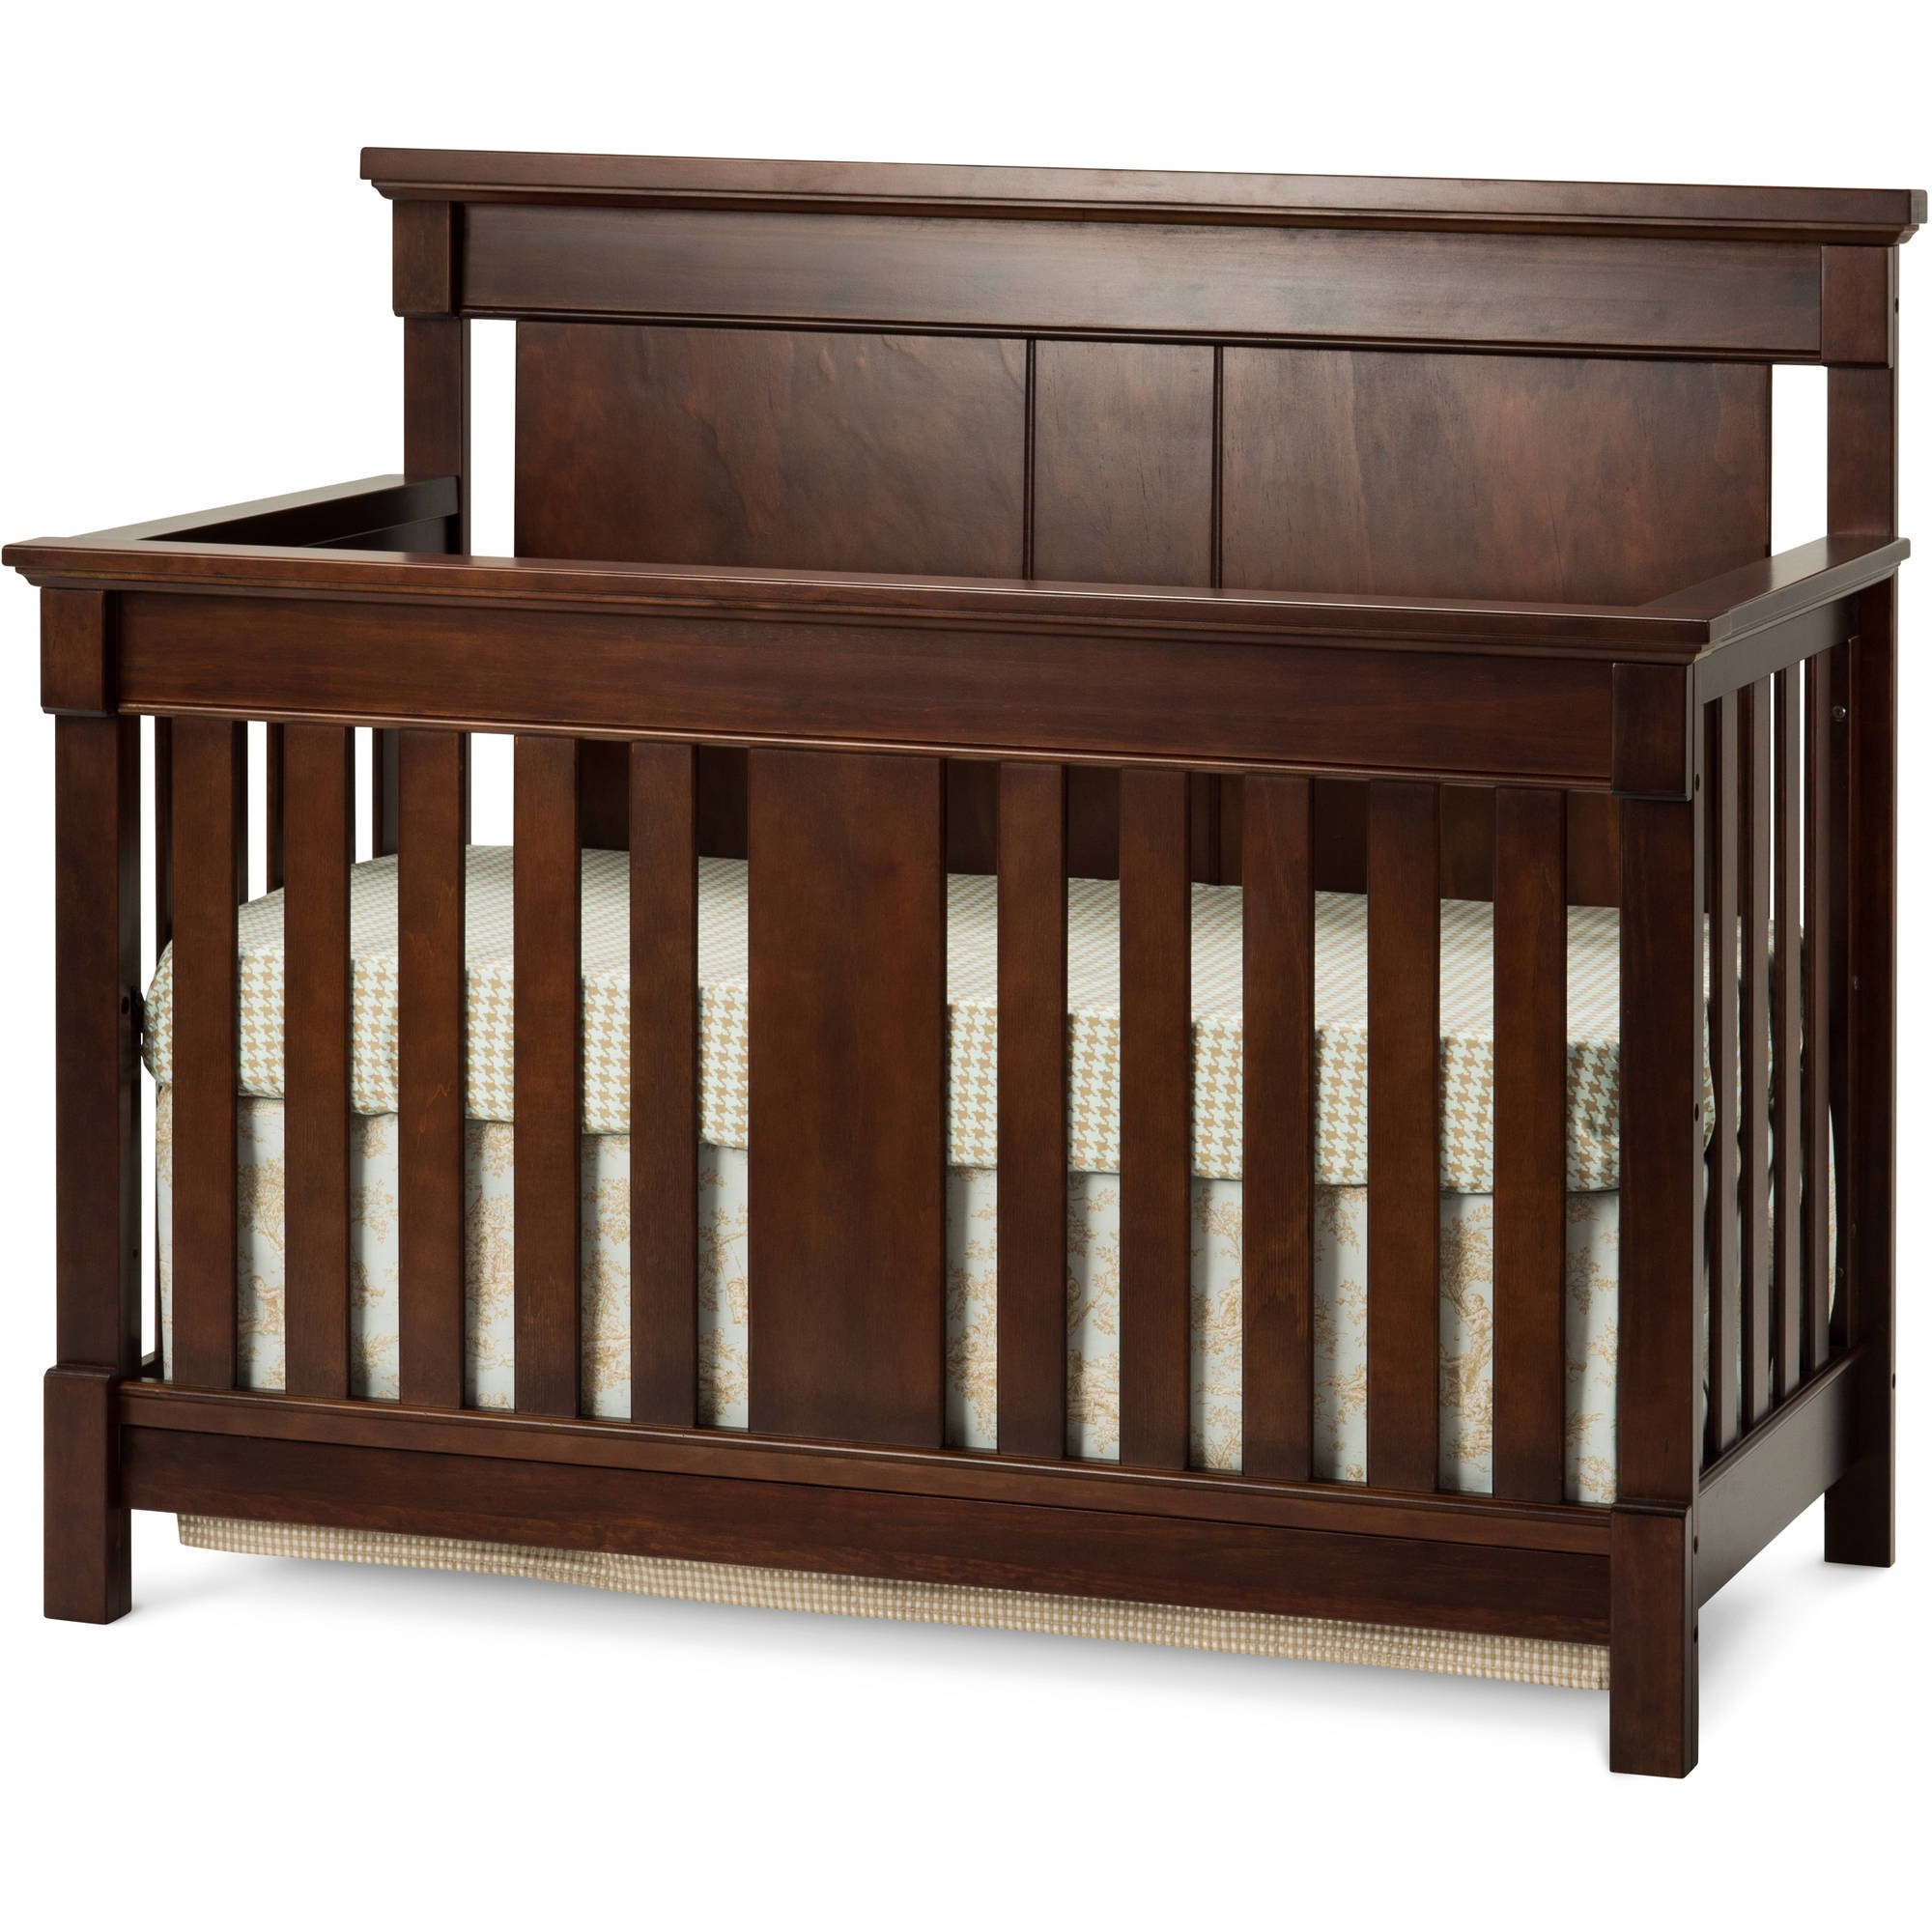 Bradford 4-in-1 Lifetime Convertible Crib, Select Cherry